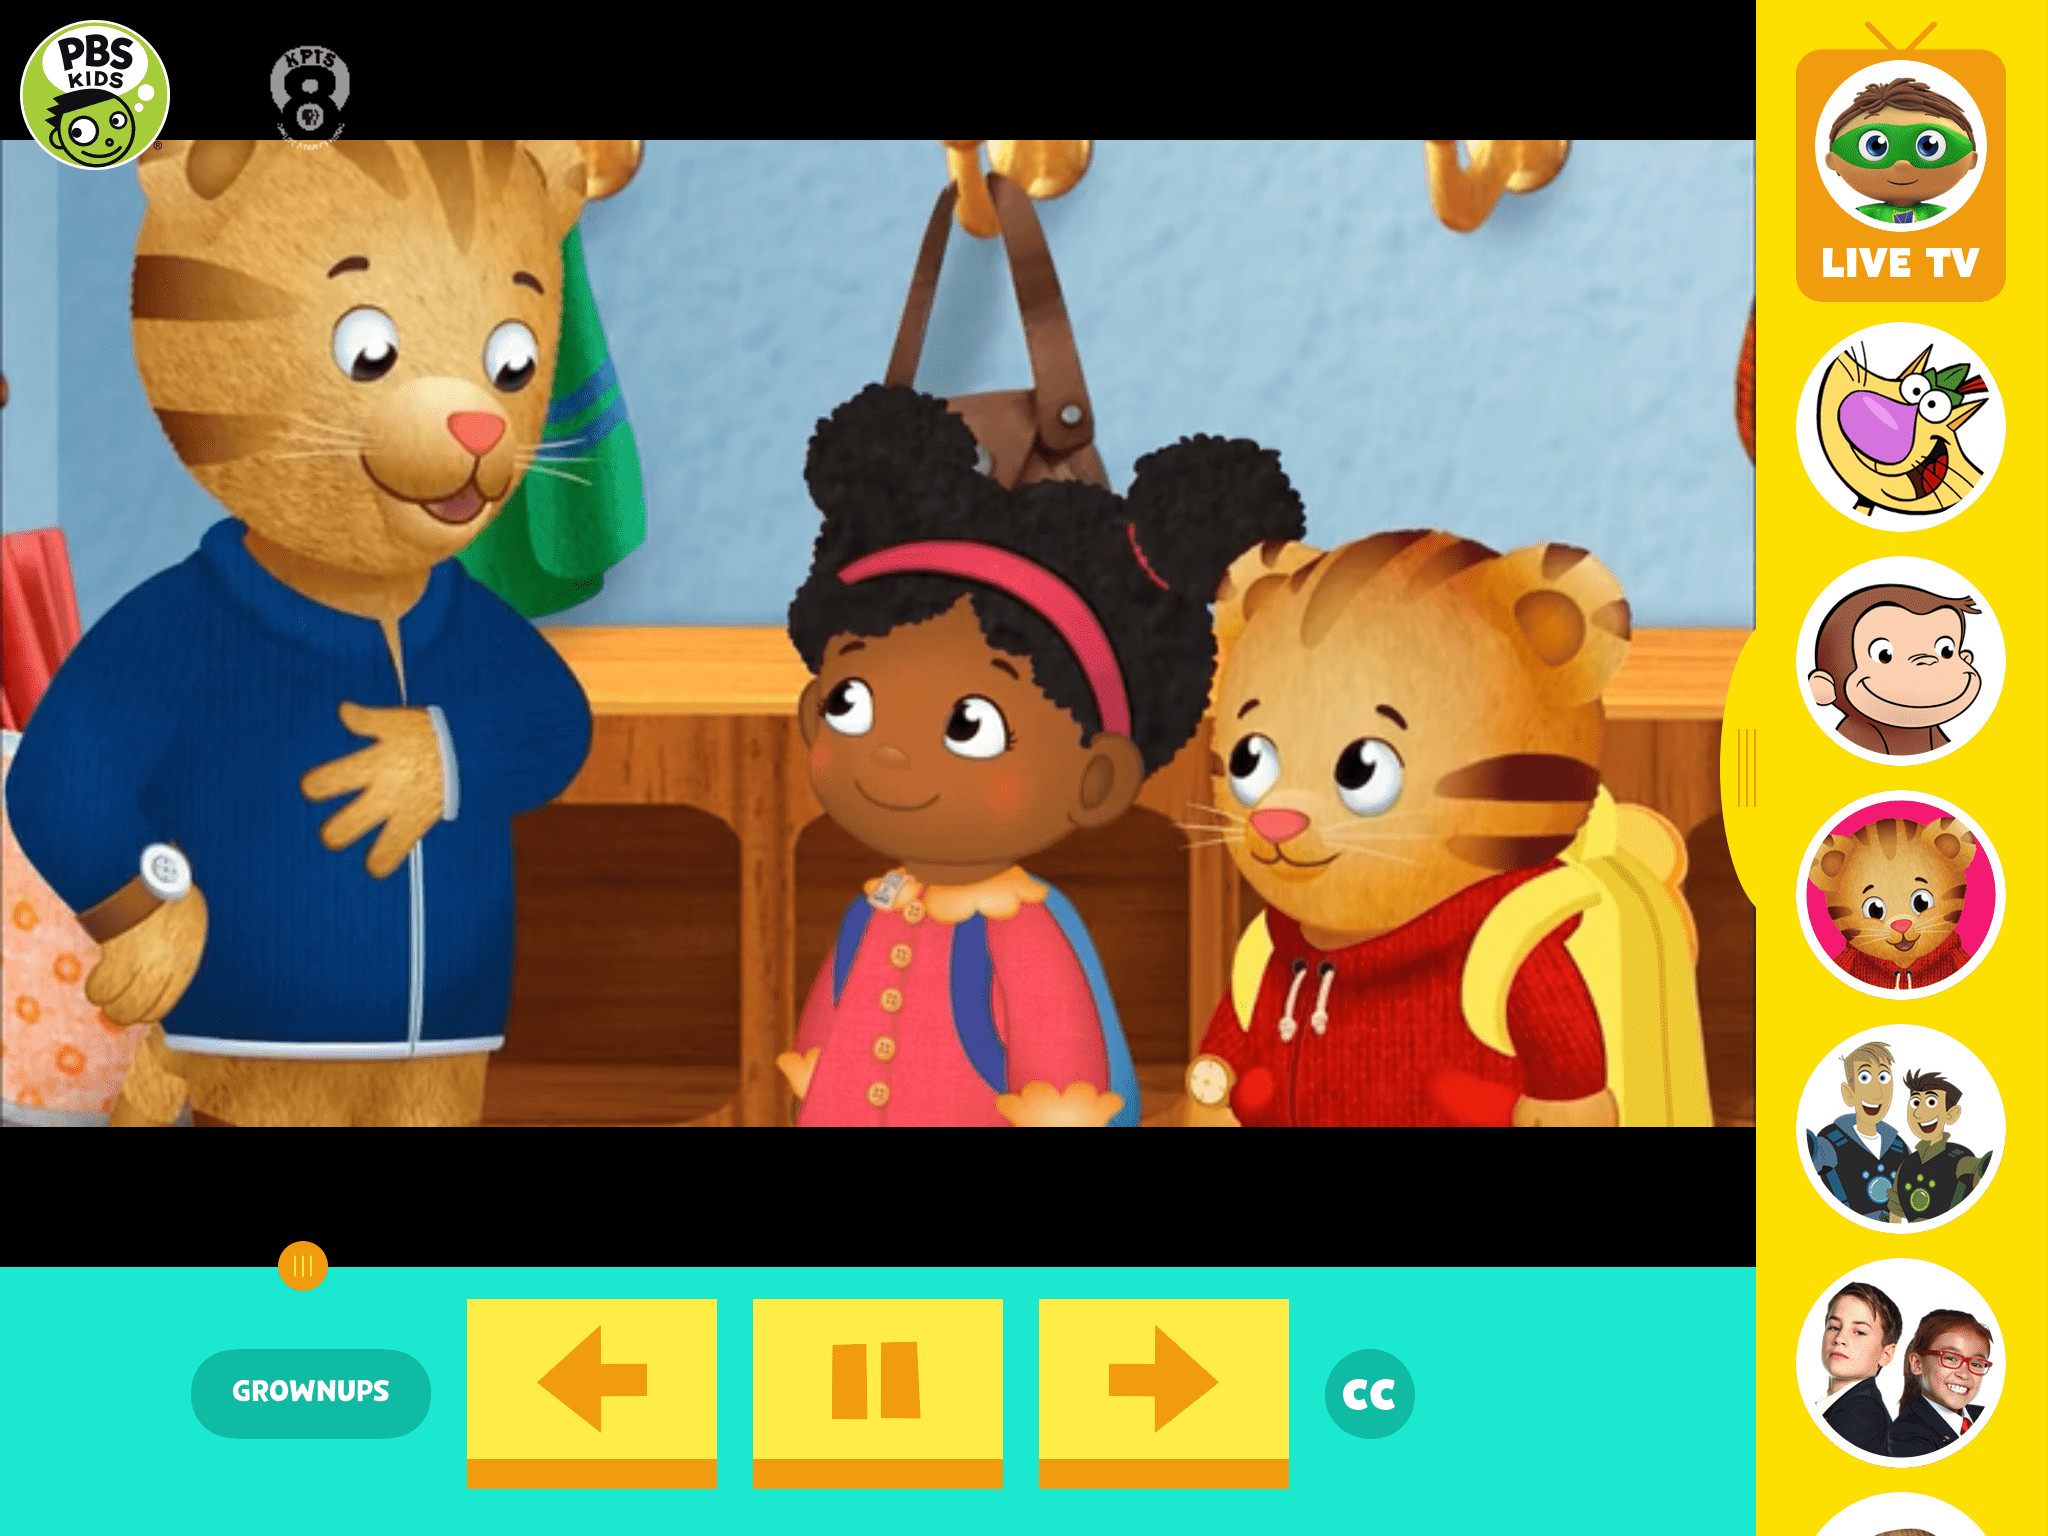 2048x1536 Screenshot of the PBS KIDS Video iPad app